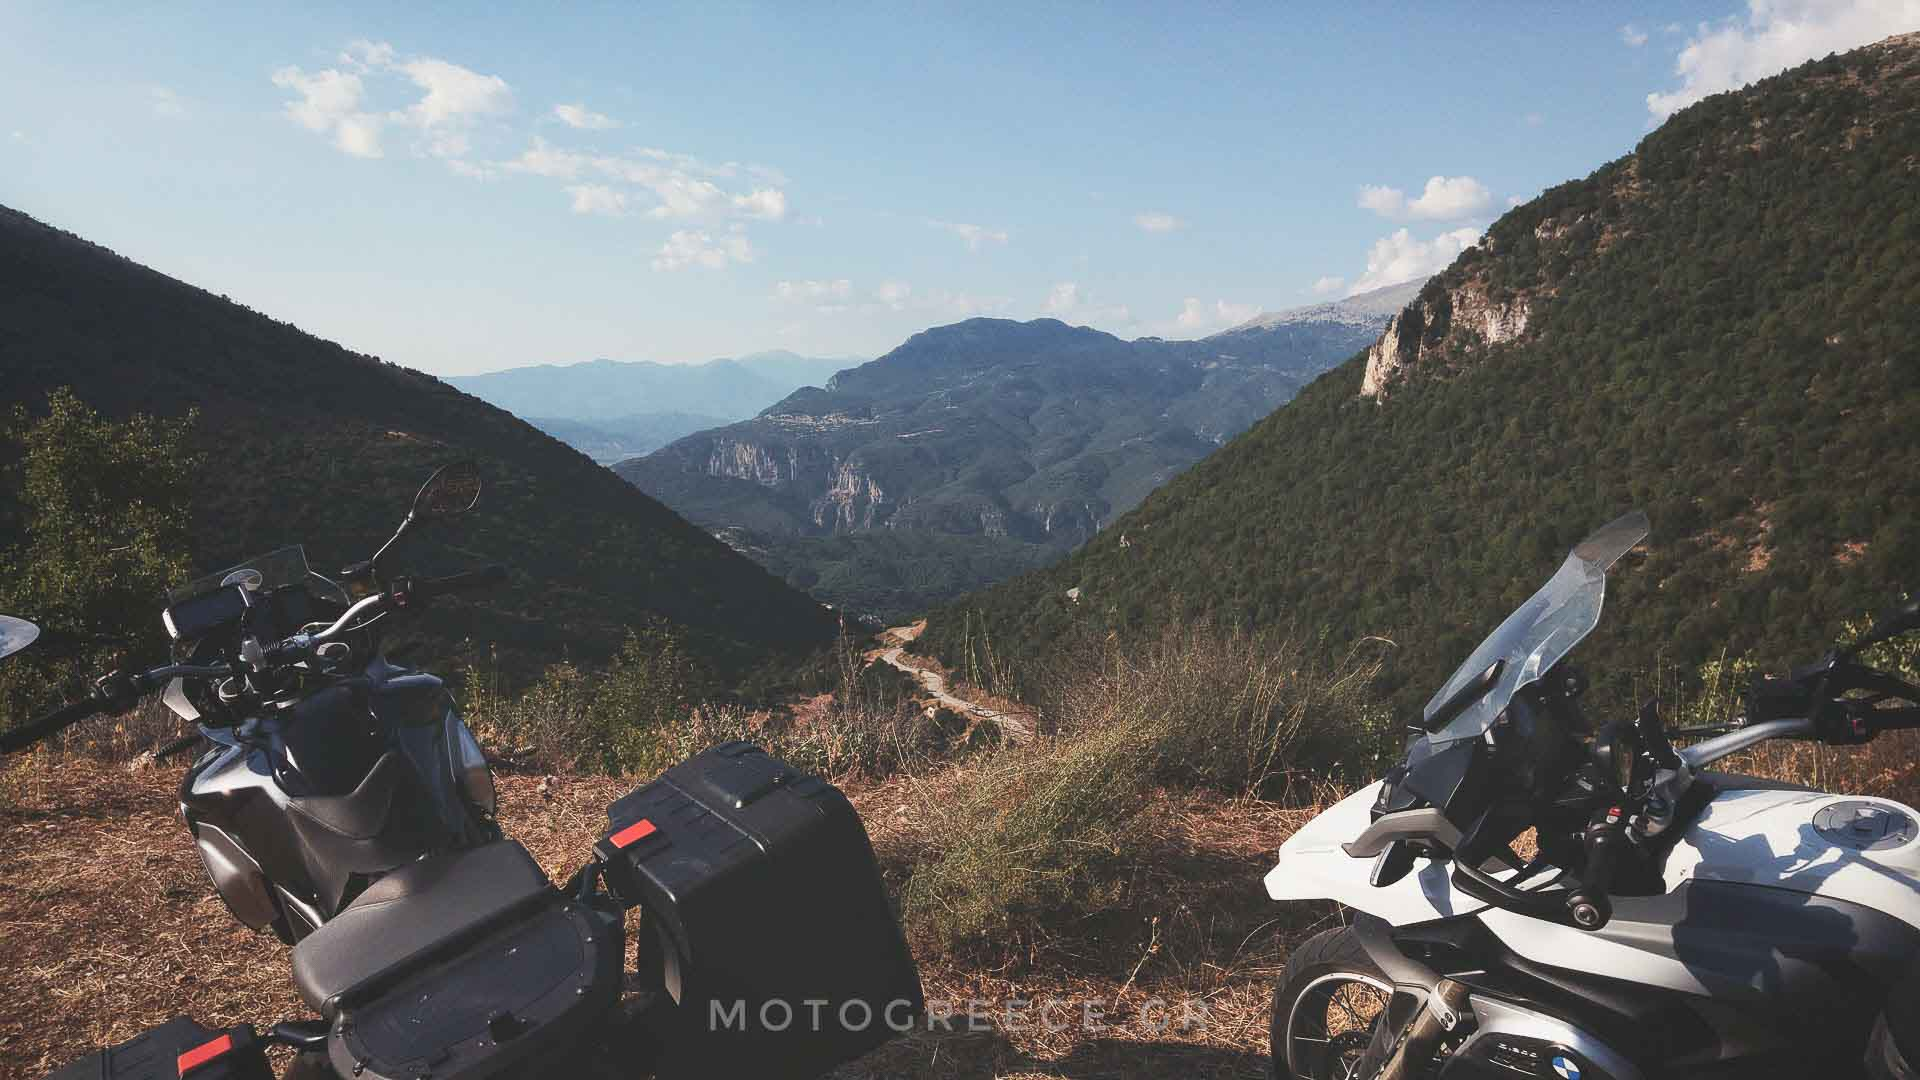 Riders reviews: motorcycle tours in Greece